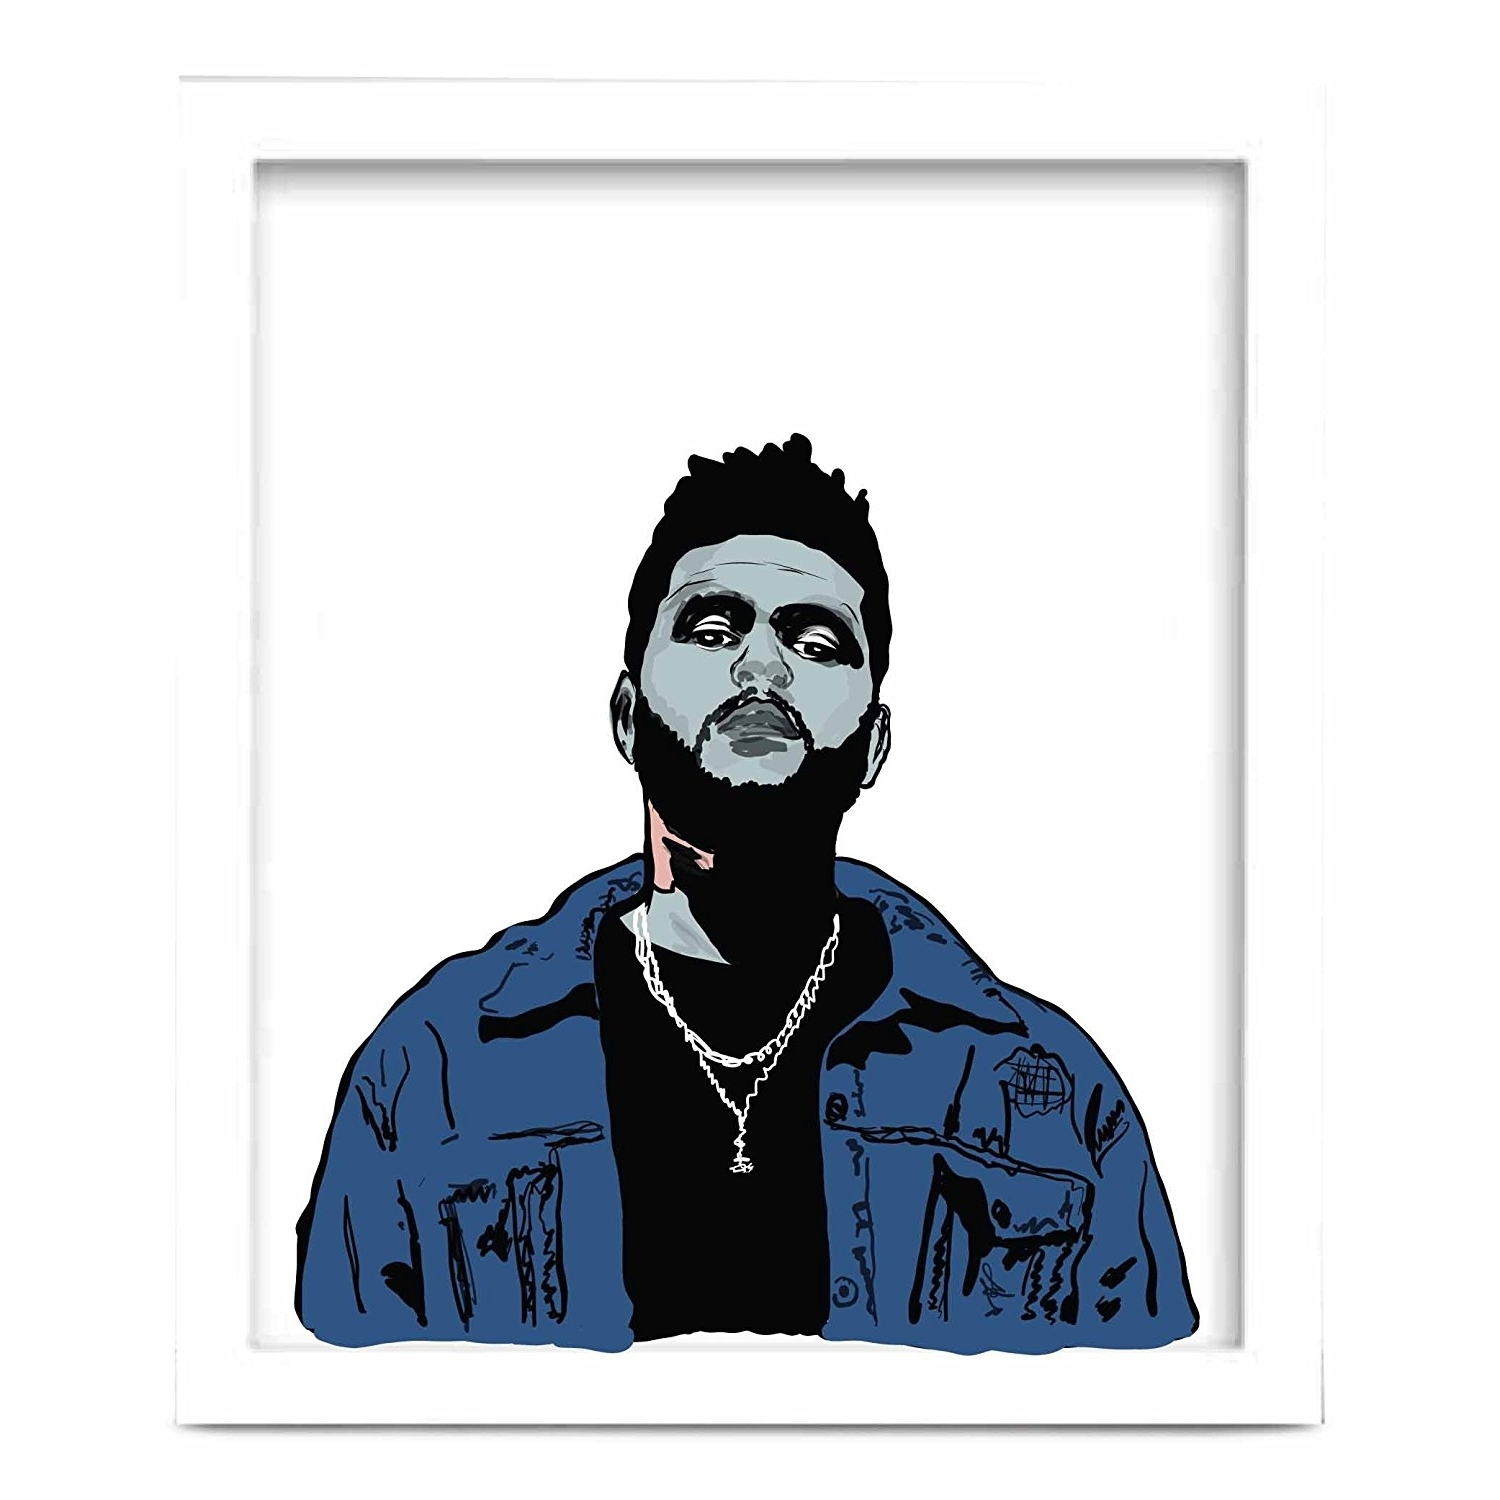 Amazon: The Weeknd 11X17 Art Poster: Posters & Prints Intended For Recent The Weeknd Wall Art (View 2 of 15)